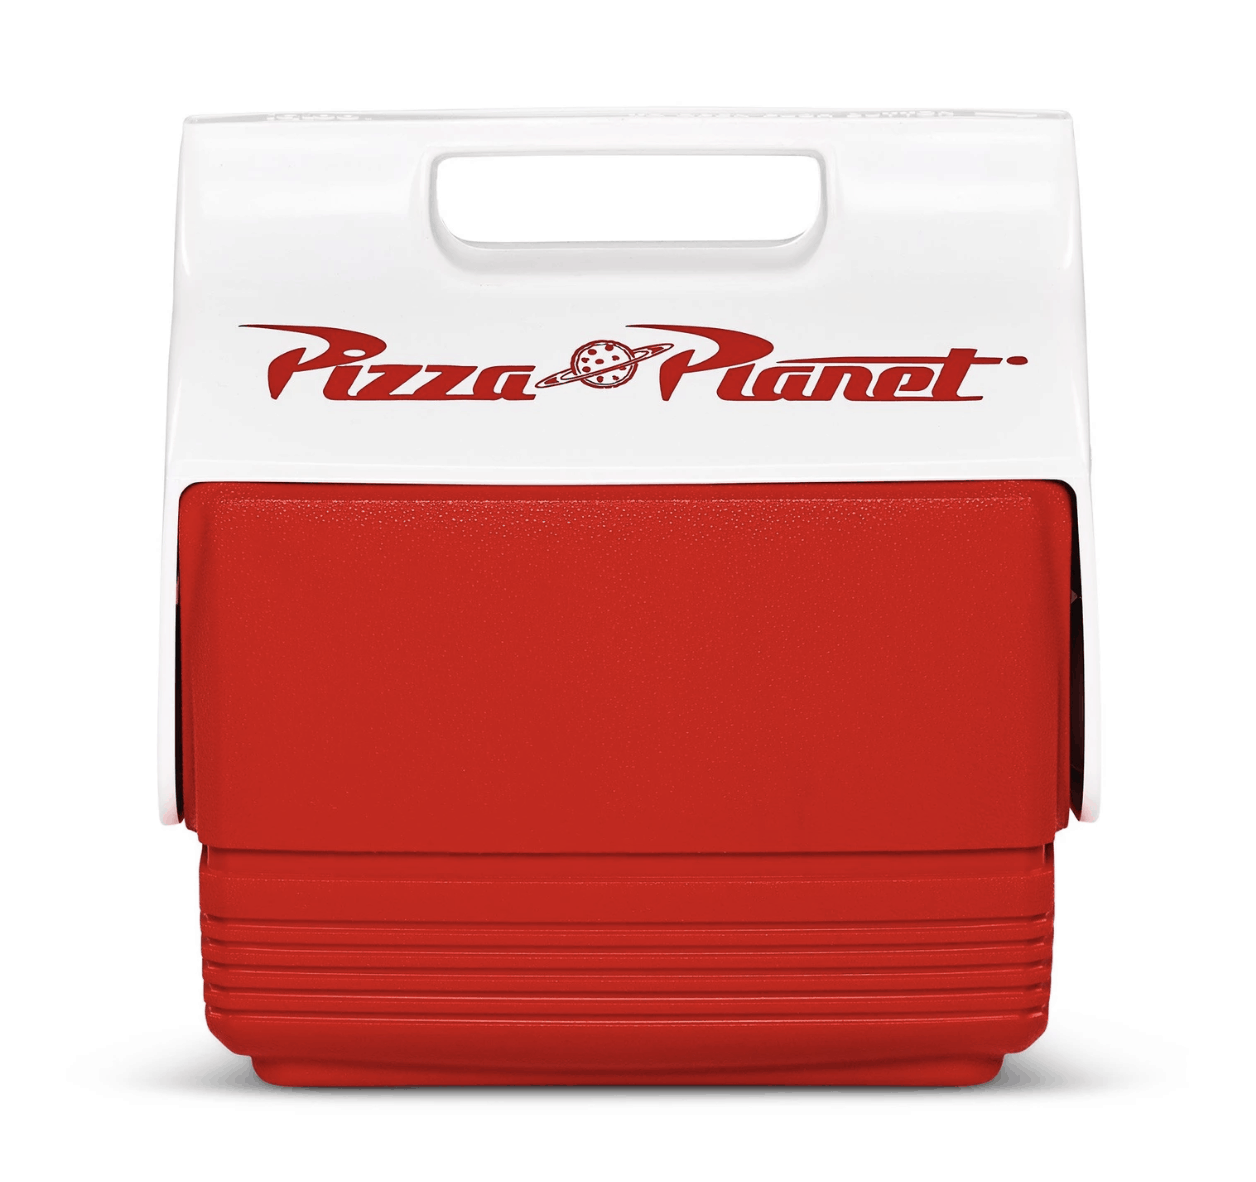 Igloo Releases Toy Story Pizza Planet Cooler 5